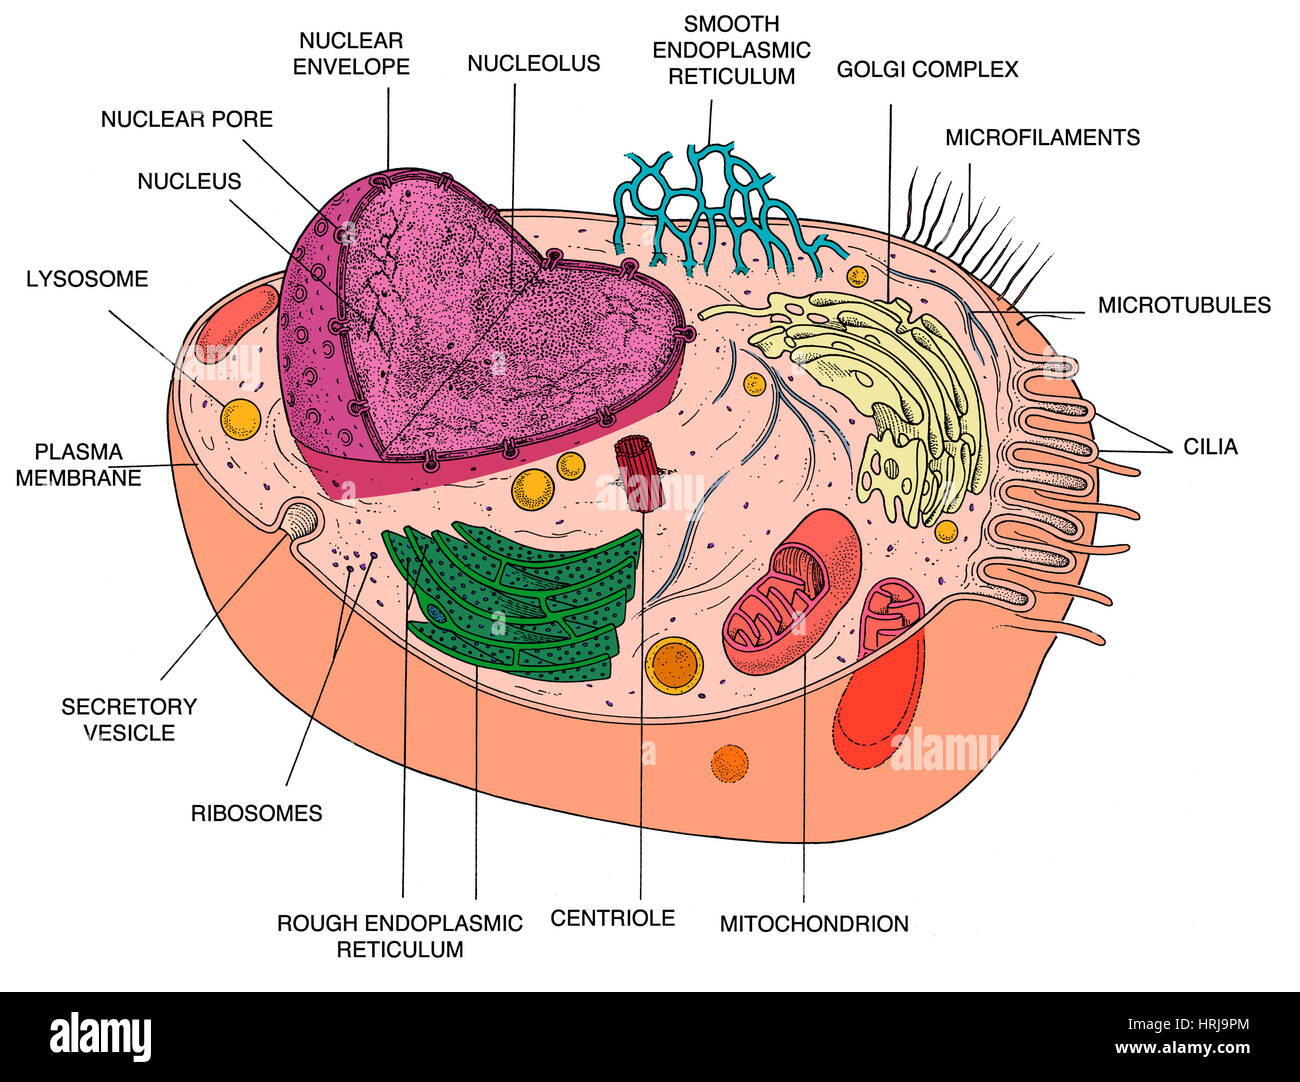 animal cell diagram HRJ9PM microfilament stock photos & microfilament stock images alamy